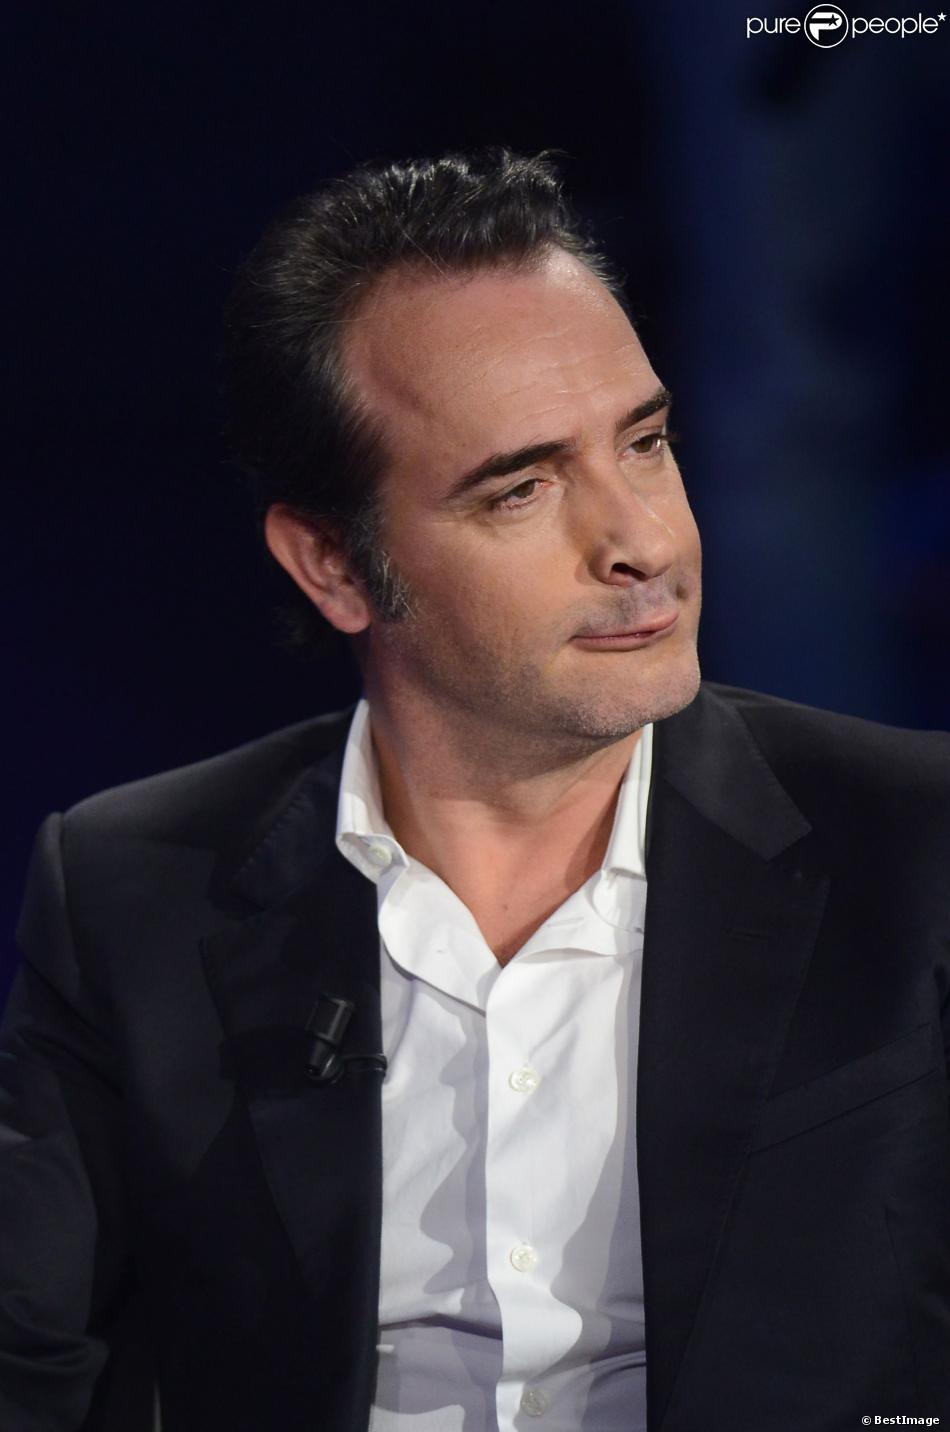 Jean dujardin aux anges son chameau fait rire george for Jean dujardin photo